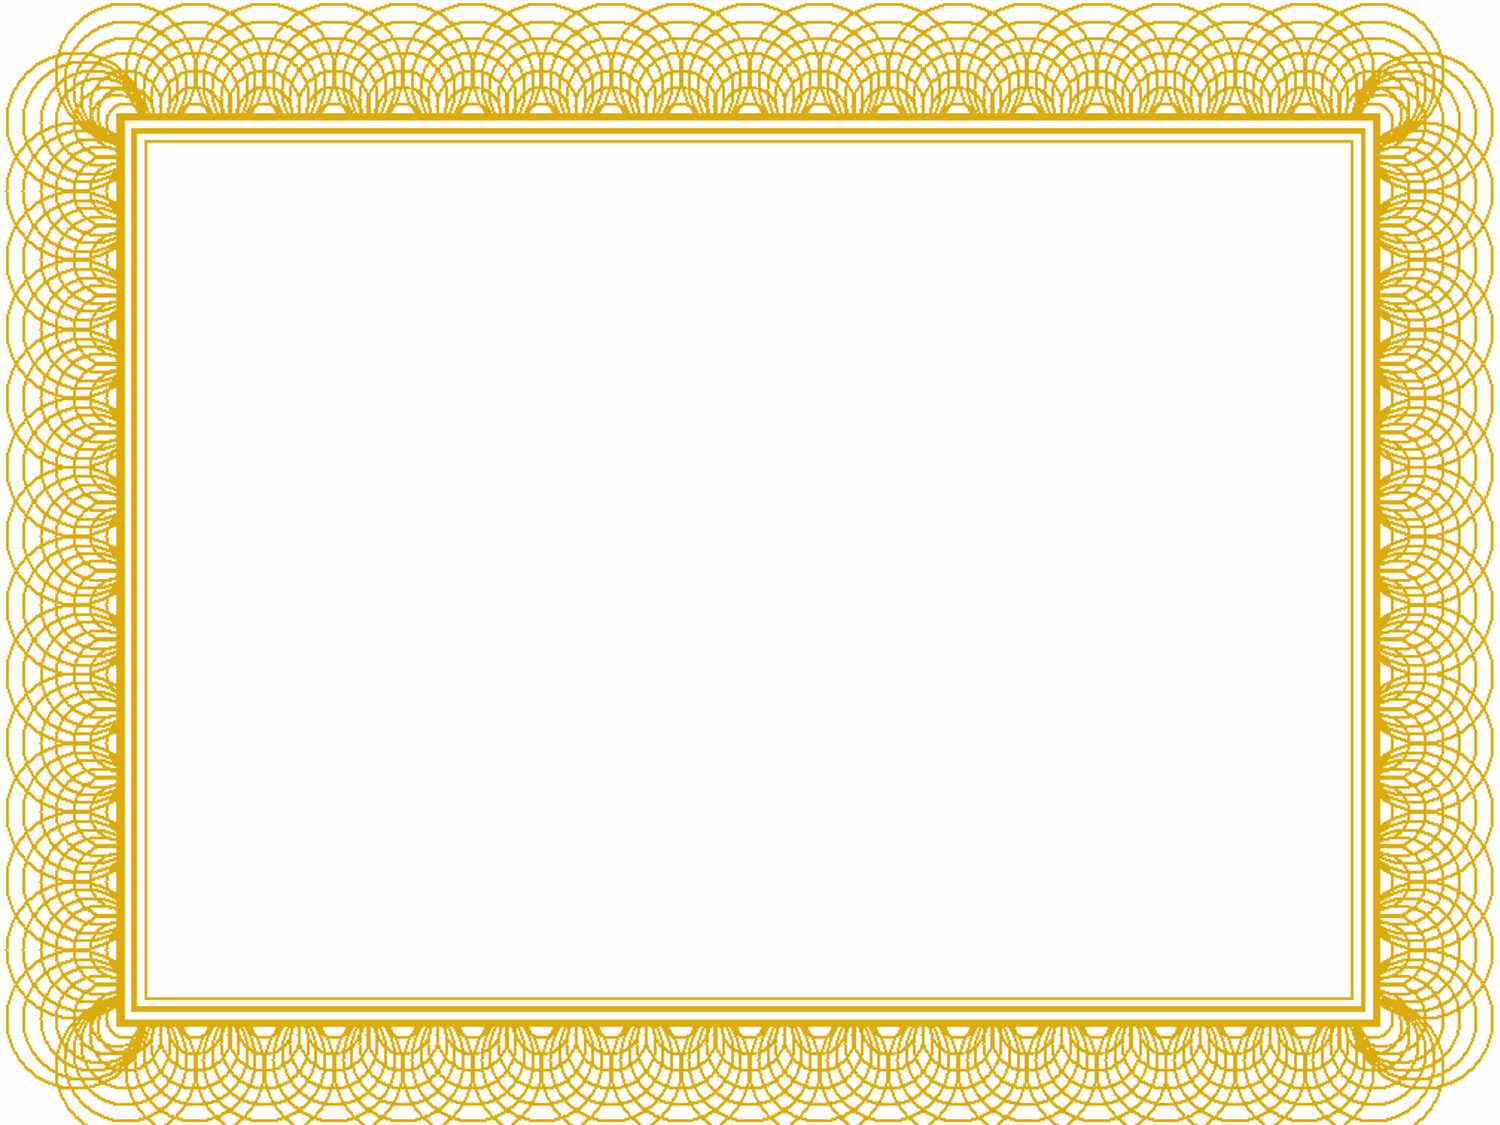 Free Gold Border Templates Fresh Borders and Frames for Certificates Financial Letter